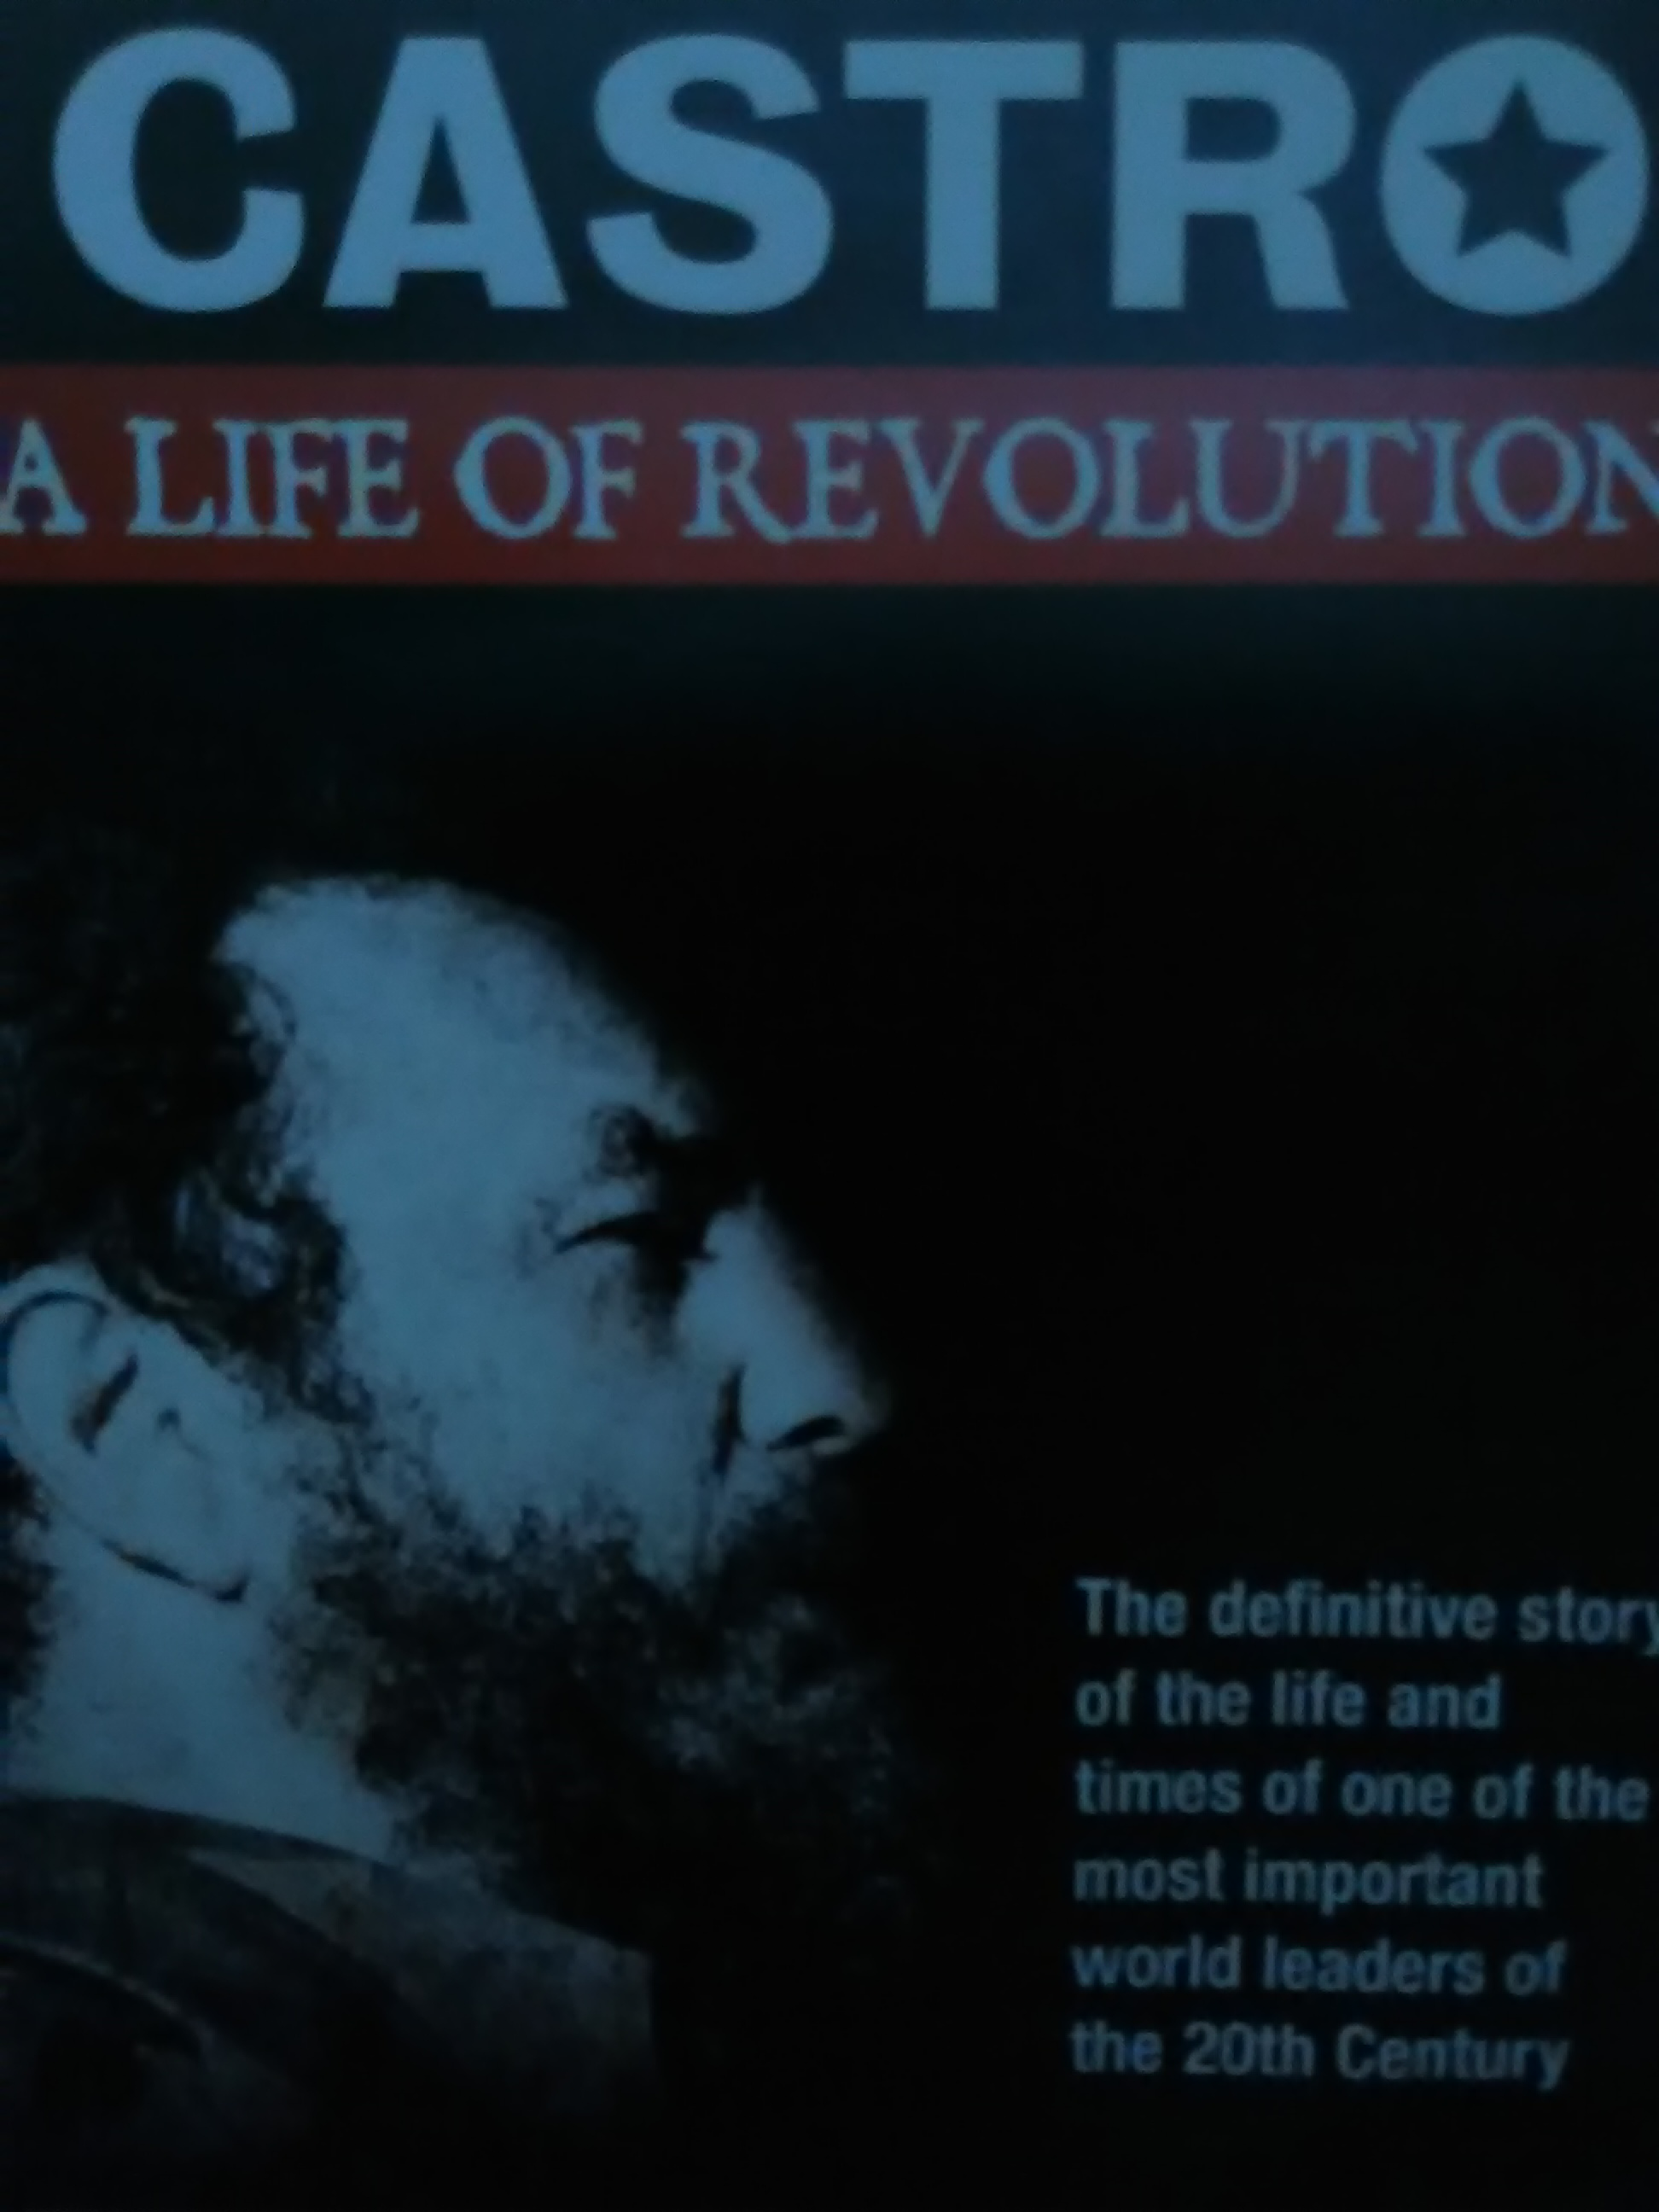 short outline of life of fidel Fidel castro's rise marks the next period in the history of cuba aided by his brother raul and the argentinean revolutionary che guevara, castro started a 1956 guerrilla war against batista in 1959 the us withdrew aid to batista, and the ruler went into exile.